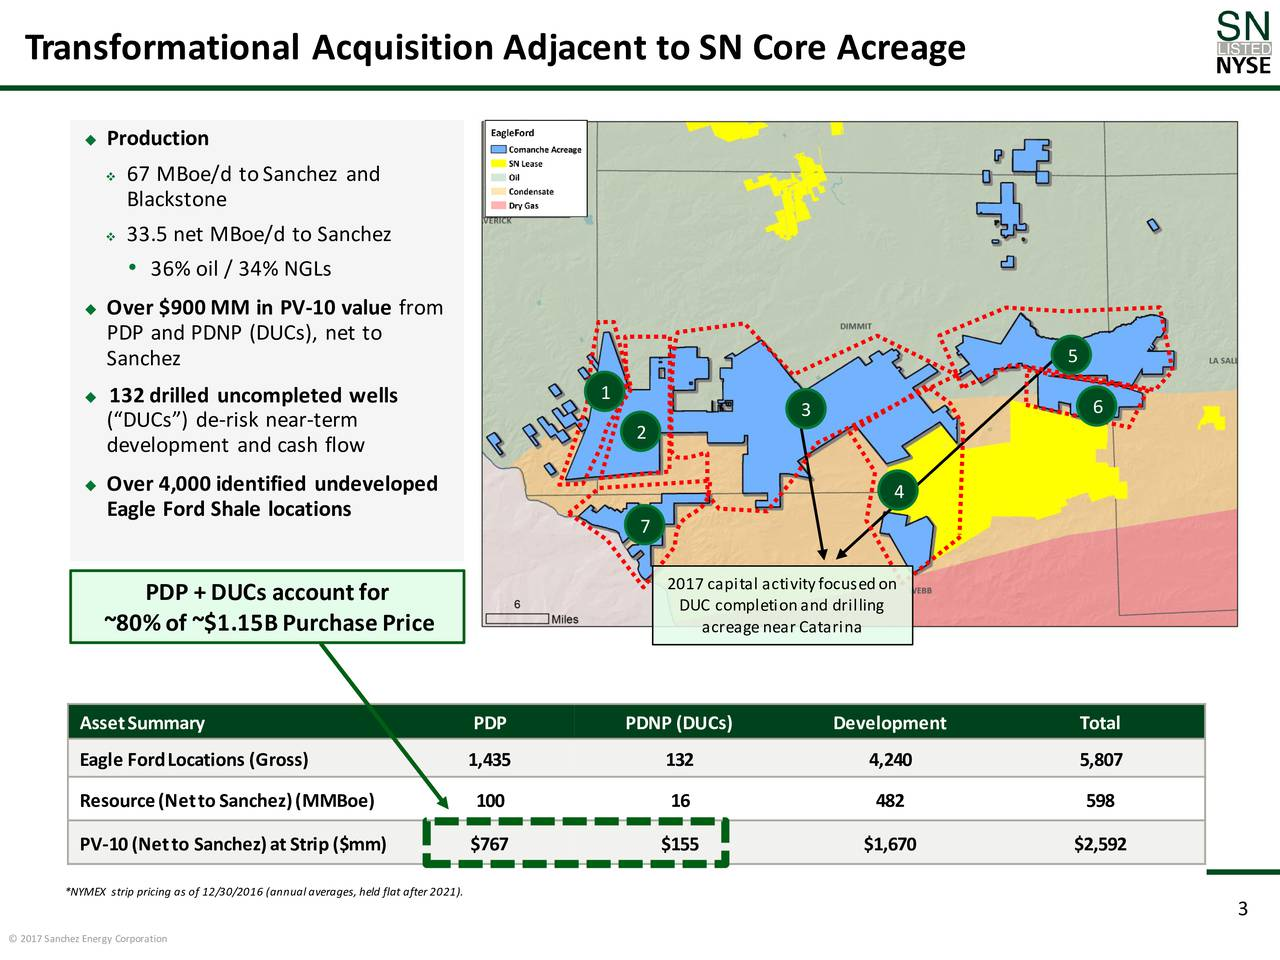 Production 67 MBoe/d toSanchez and Blackstone 33.5 net MBoe/d to Sanchez 36% oil / 34% NGLs Over $900 MM in PV-10 value from PDP and PDNP (DUCs), net to 5 Sanchez 1 132 drilled uncompleted wells 3 6 (DUCs) de-risk near-term 2 development and cash flow Over 4,000 identified undeveloped 4 Eagle Ford Shale locations 7 2017 capital activityfocusedon PDP +DUCs accountfor DUC completionand drilling ~80%of ~$1.15BPurchasePrice acreage near Catarina AssetSummary PDP PDNP (DUCs) Development Total Eagle FordLocations (Gross) 1,435 132 4,240 5,807 Resource(NettoSanchez)(MMBoe) 100 16 482 598 PV-10(Netto Sanchez)atStrip ($mm) $767 $155 $1,670 $2,592 *NYMEX strip pricing as of 12/30/2016 (annual averages, held flat after 2021). 3 2017 Sanchez Energy Corporation